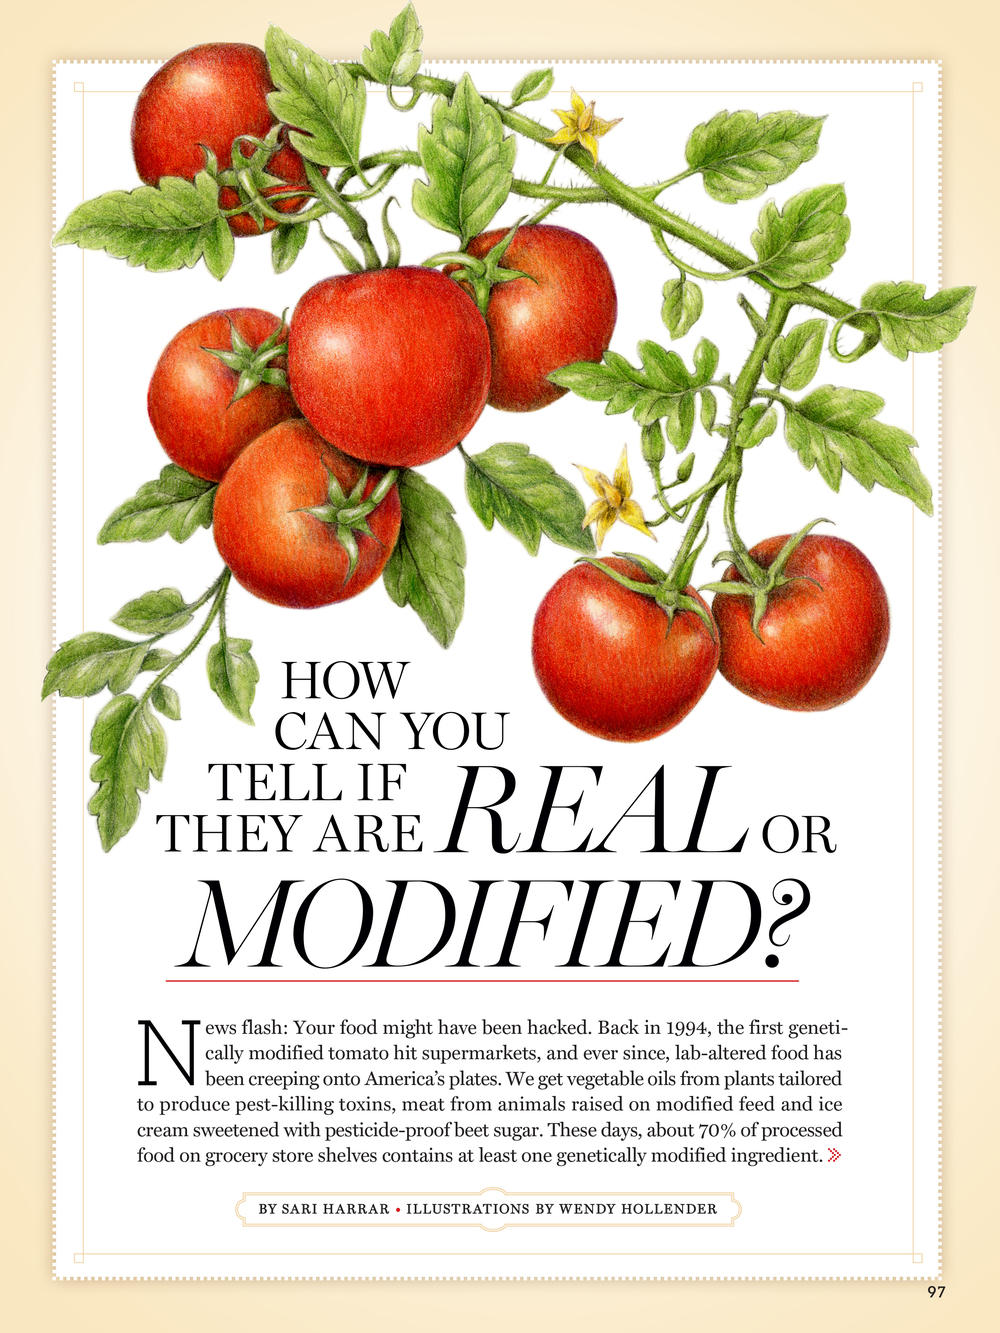 GOOD HOUSEKEEPING MAGAZINE August 2014 Illustrations of vegetables and fruits for an article about genetically modified organisms (GMOs).  Read the article here.